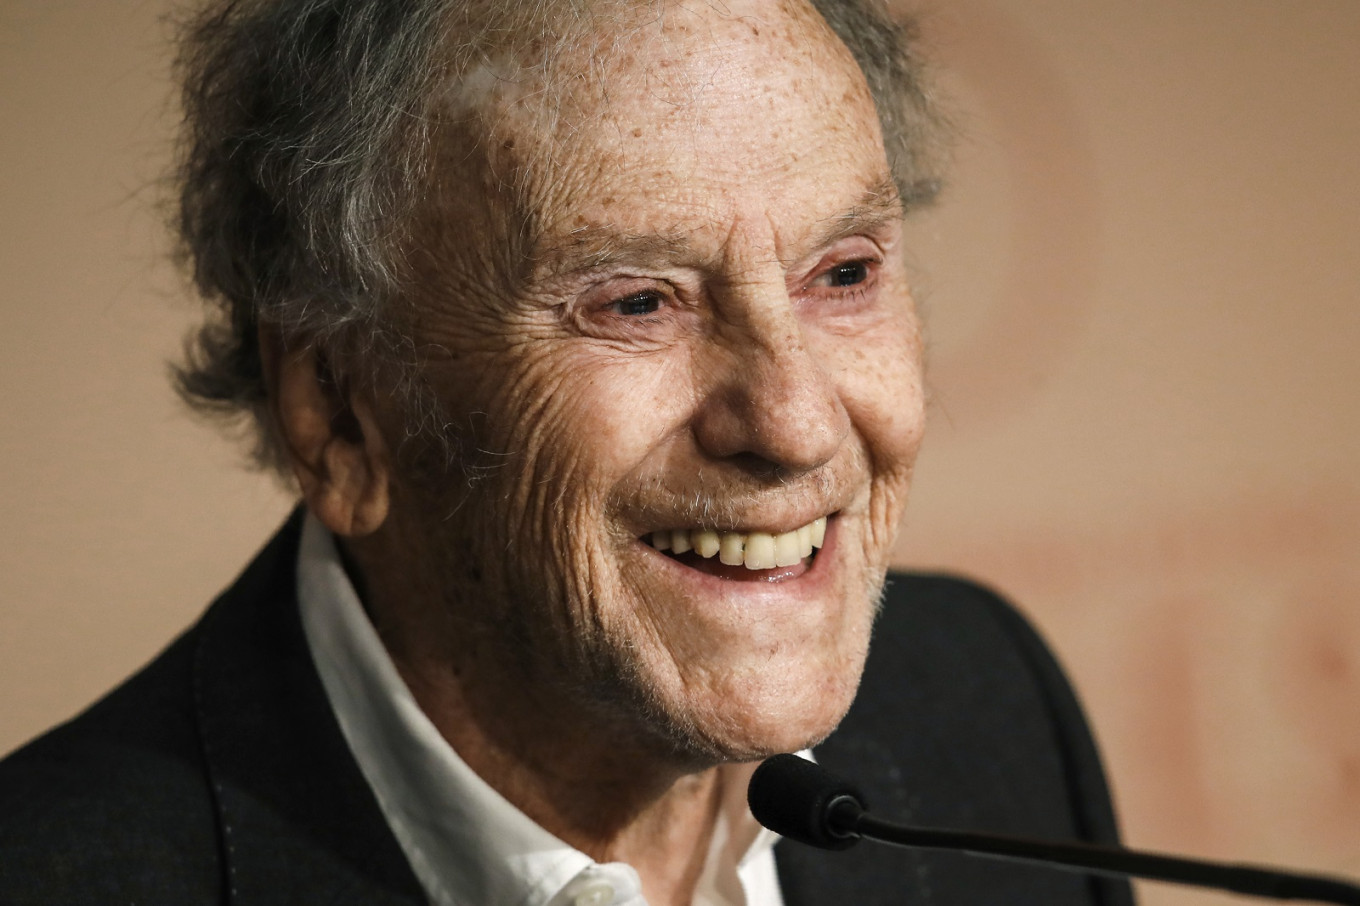 Cancer, chaos, tragedy... French film legend Trintignant reaches for poetry